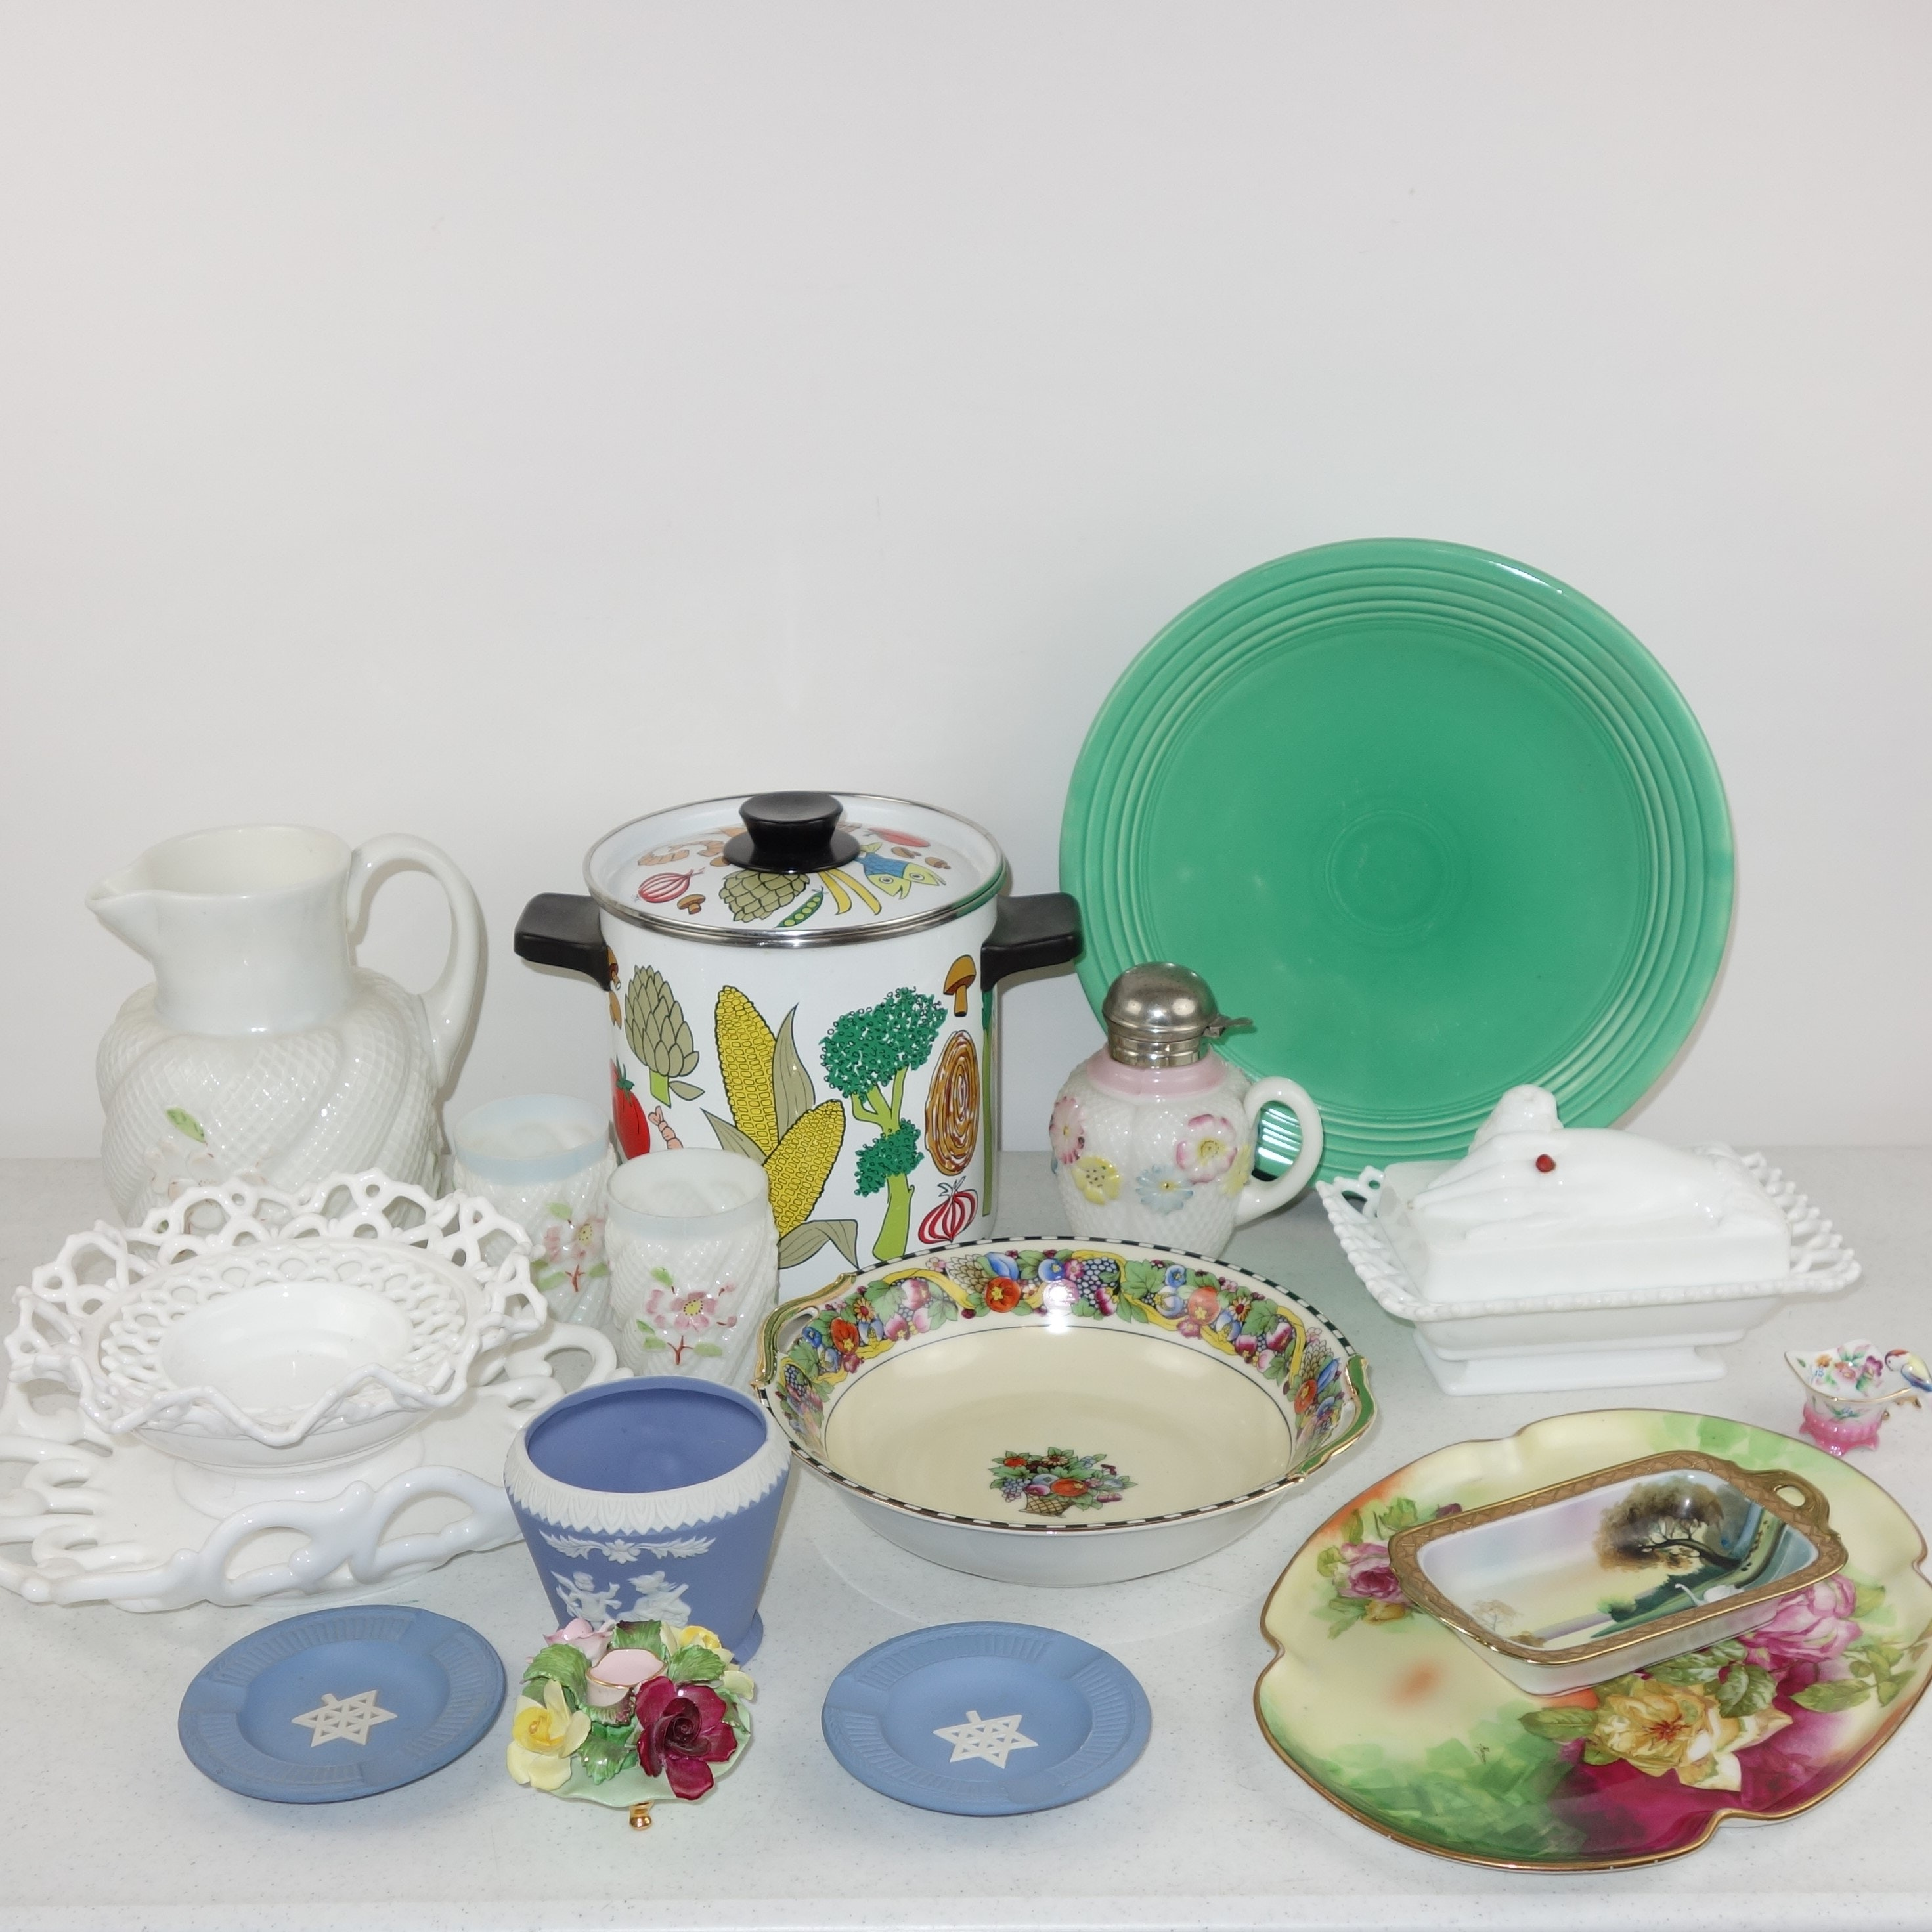 Kitchenalia and Decor including Fiestaware and Wedgwood